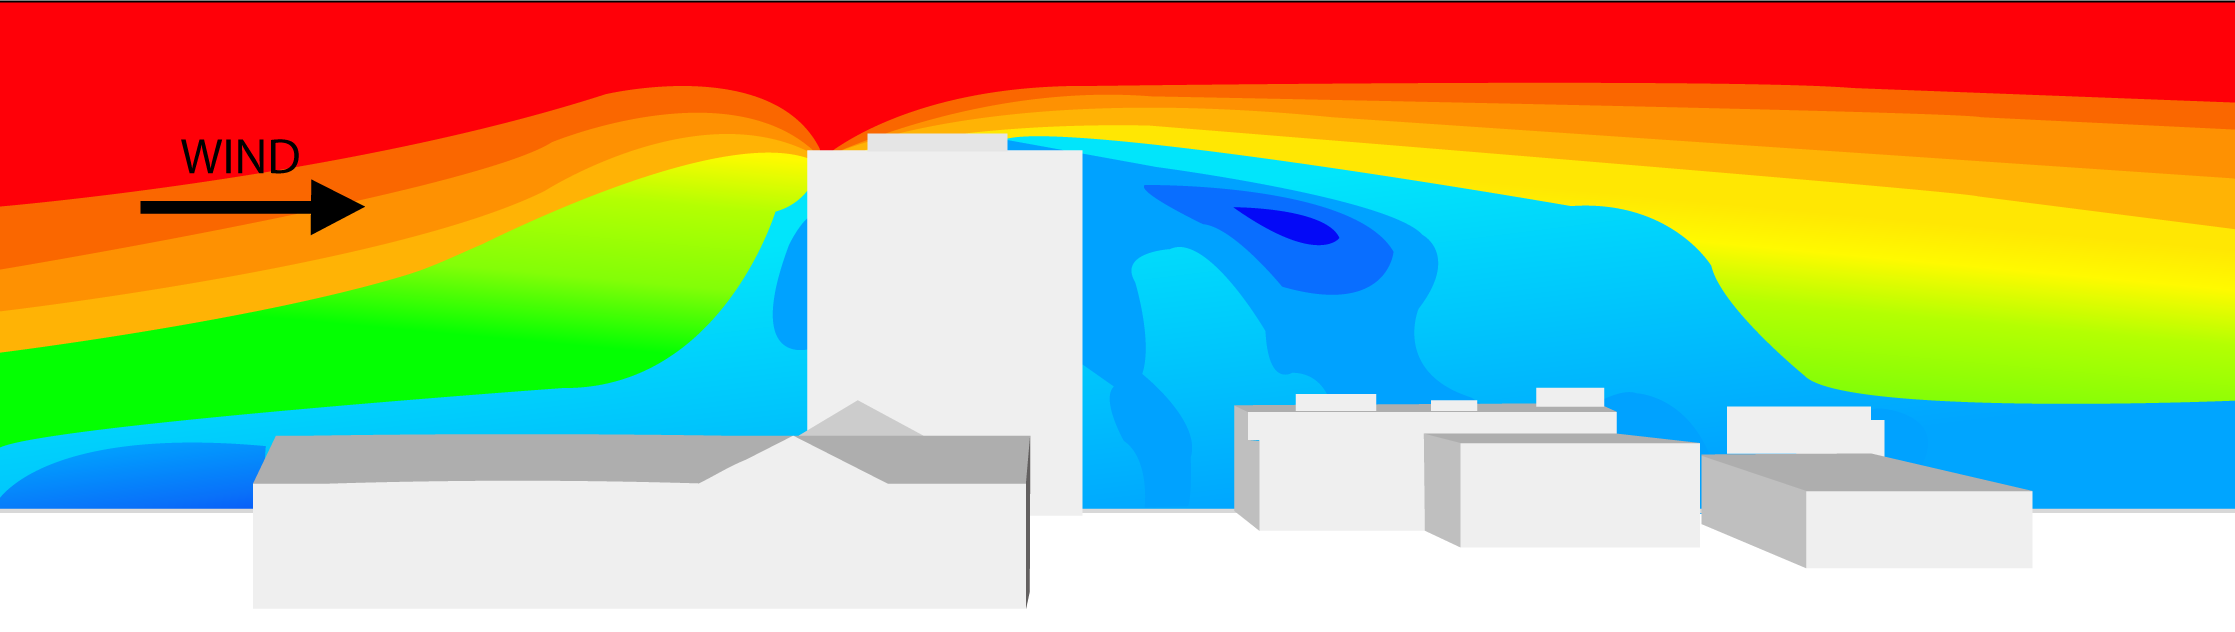 Fluid Dynamics clipart #17, Download drawings